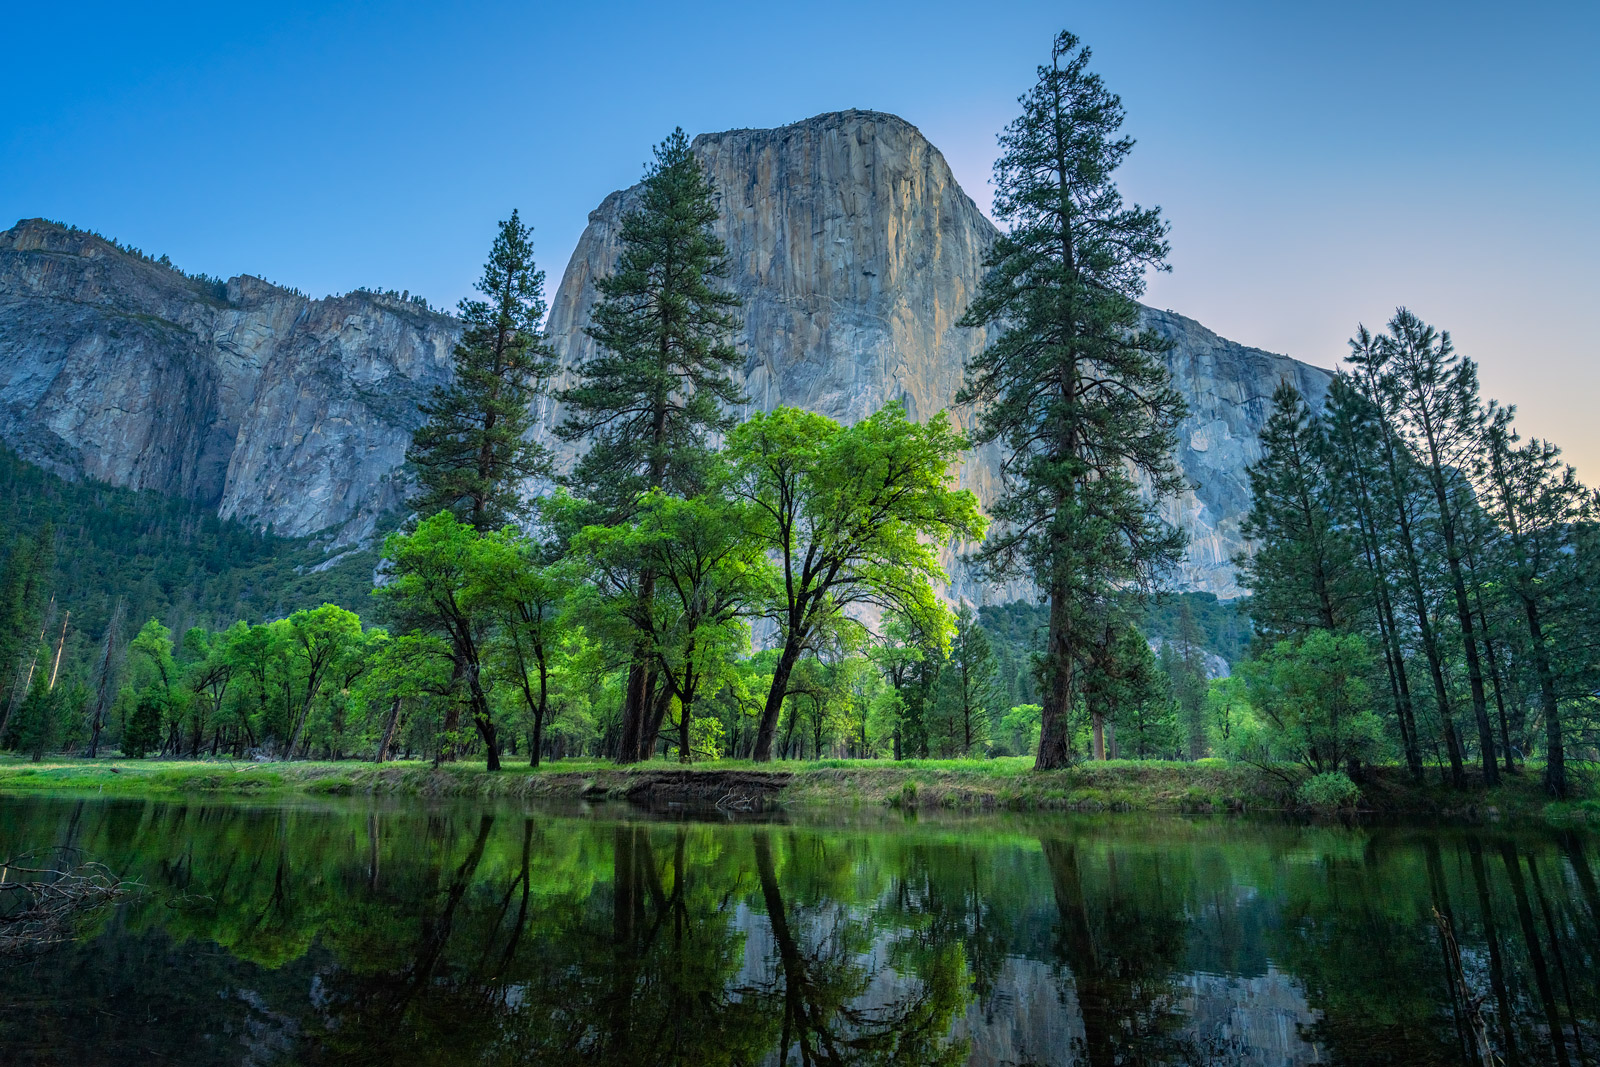 A Limited Edition, Fine Art photograph of El Capitan with trees reflecting in the Merced River at Yosemite National Park in California...